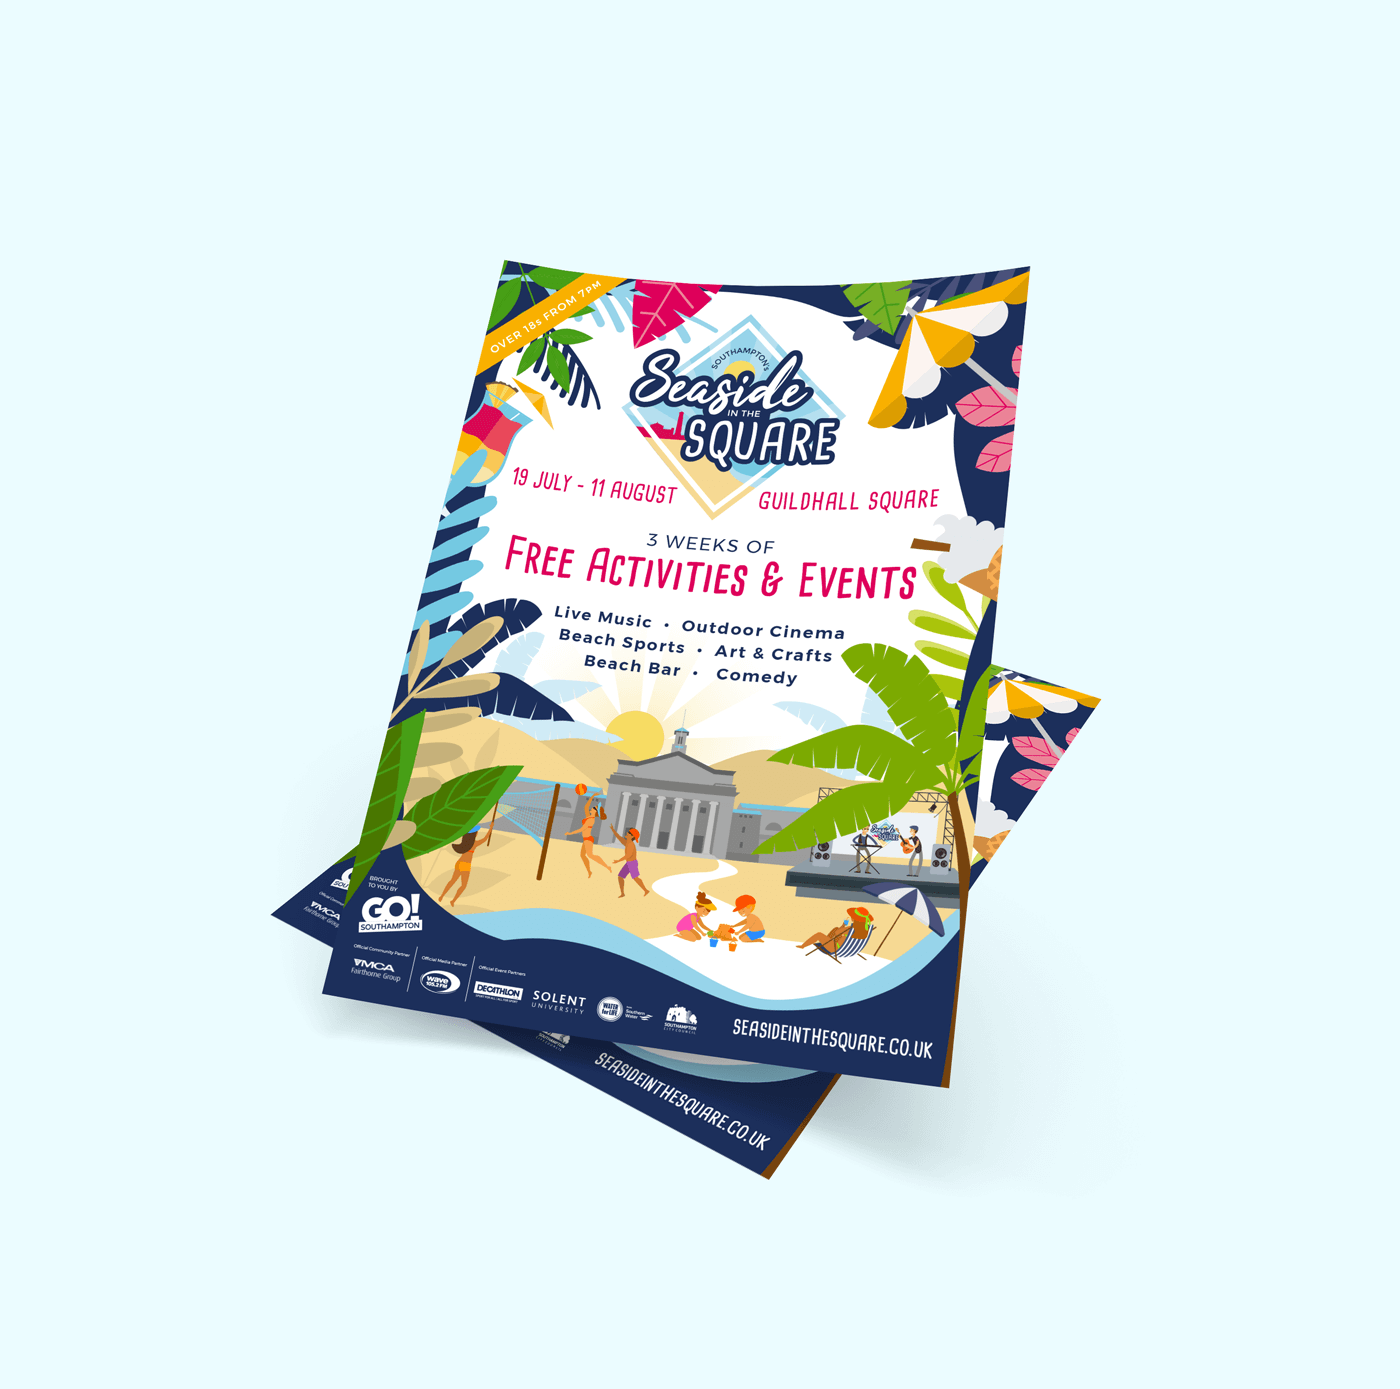 Seaside In the Square Posters Mockup